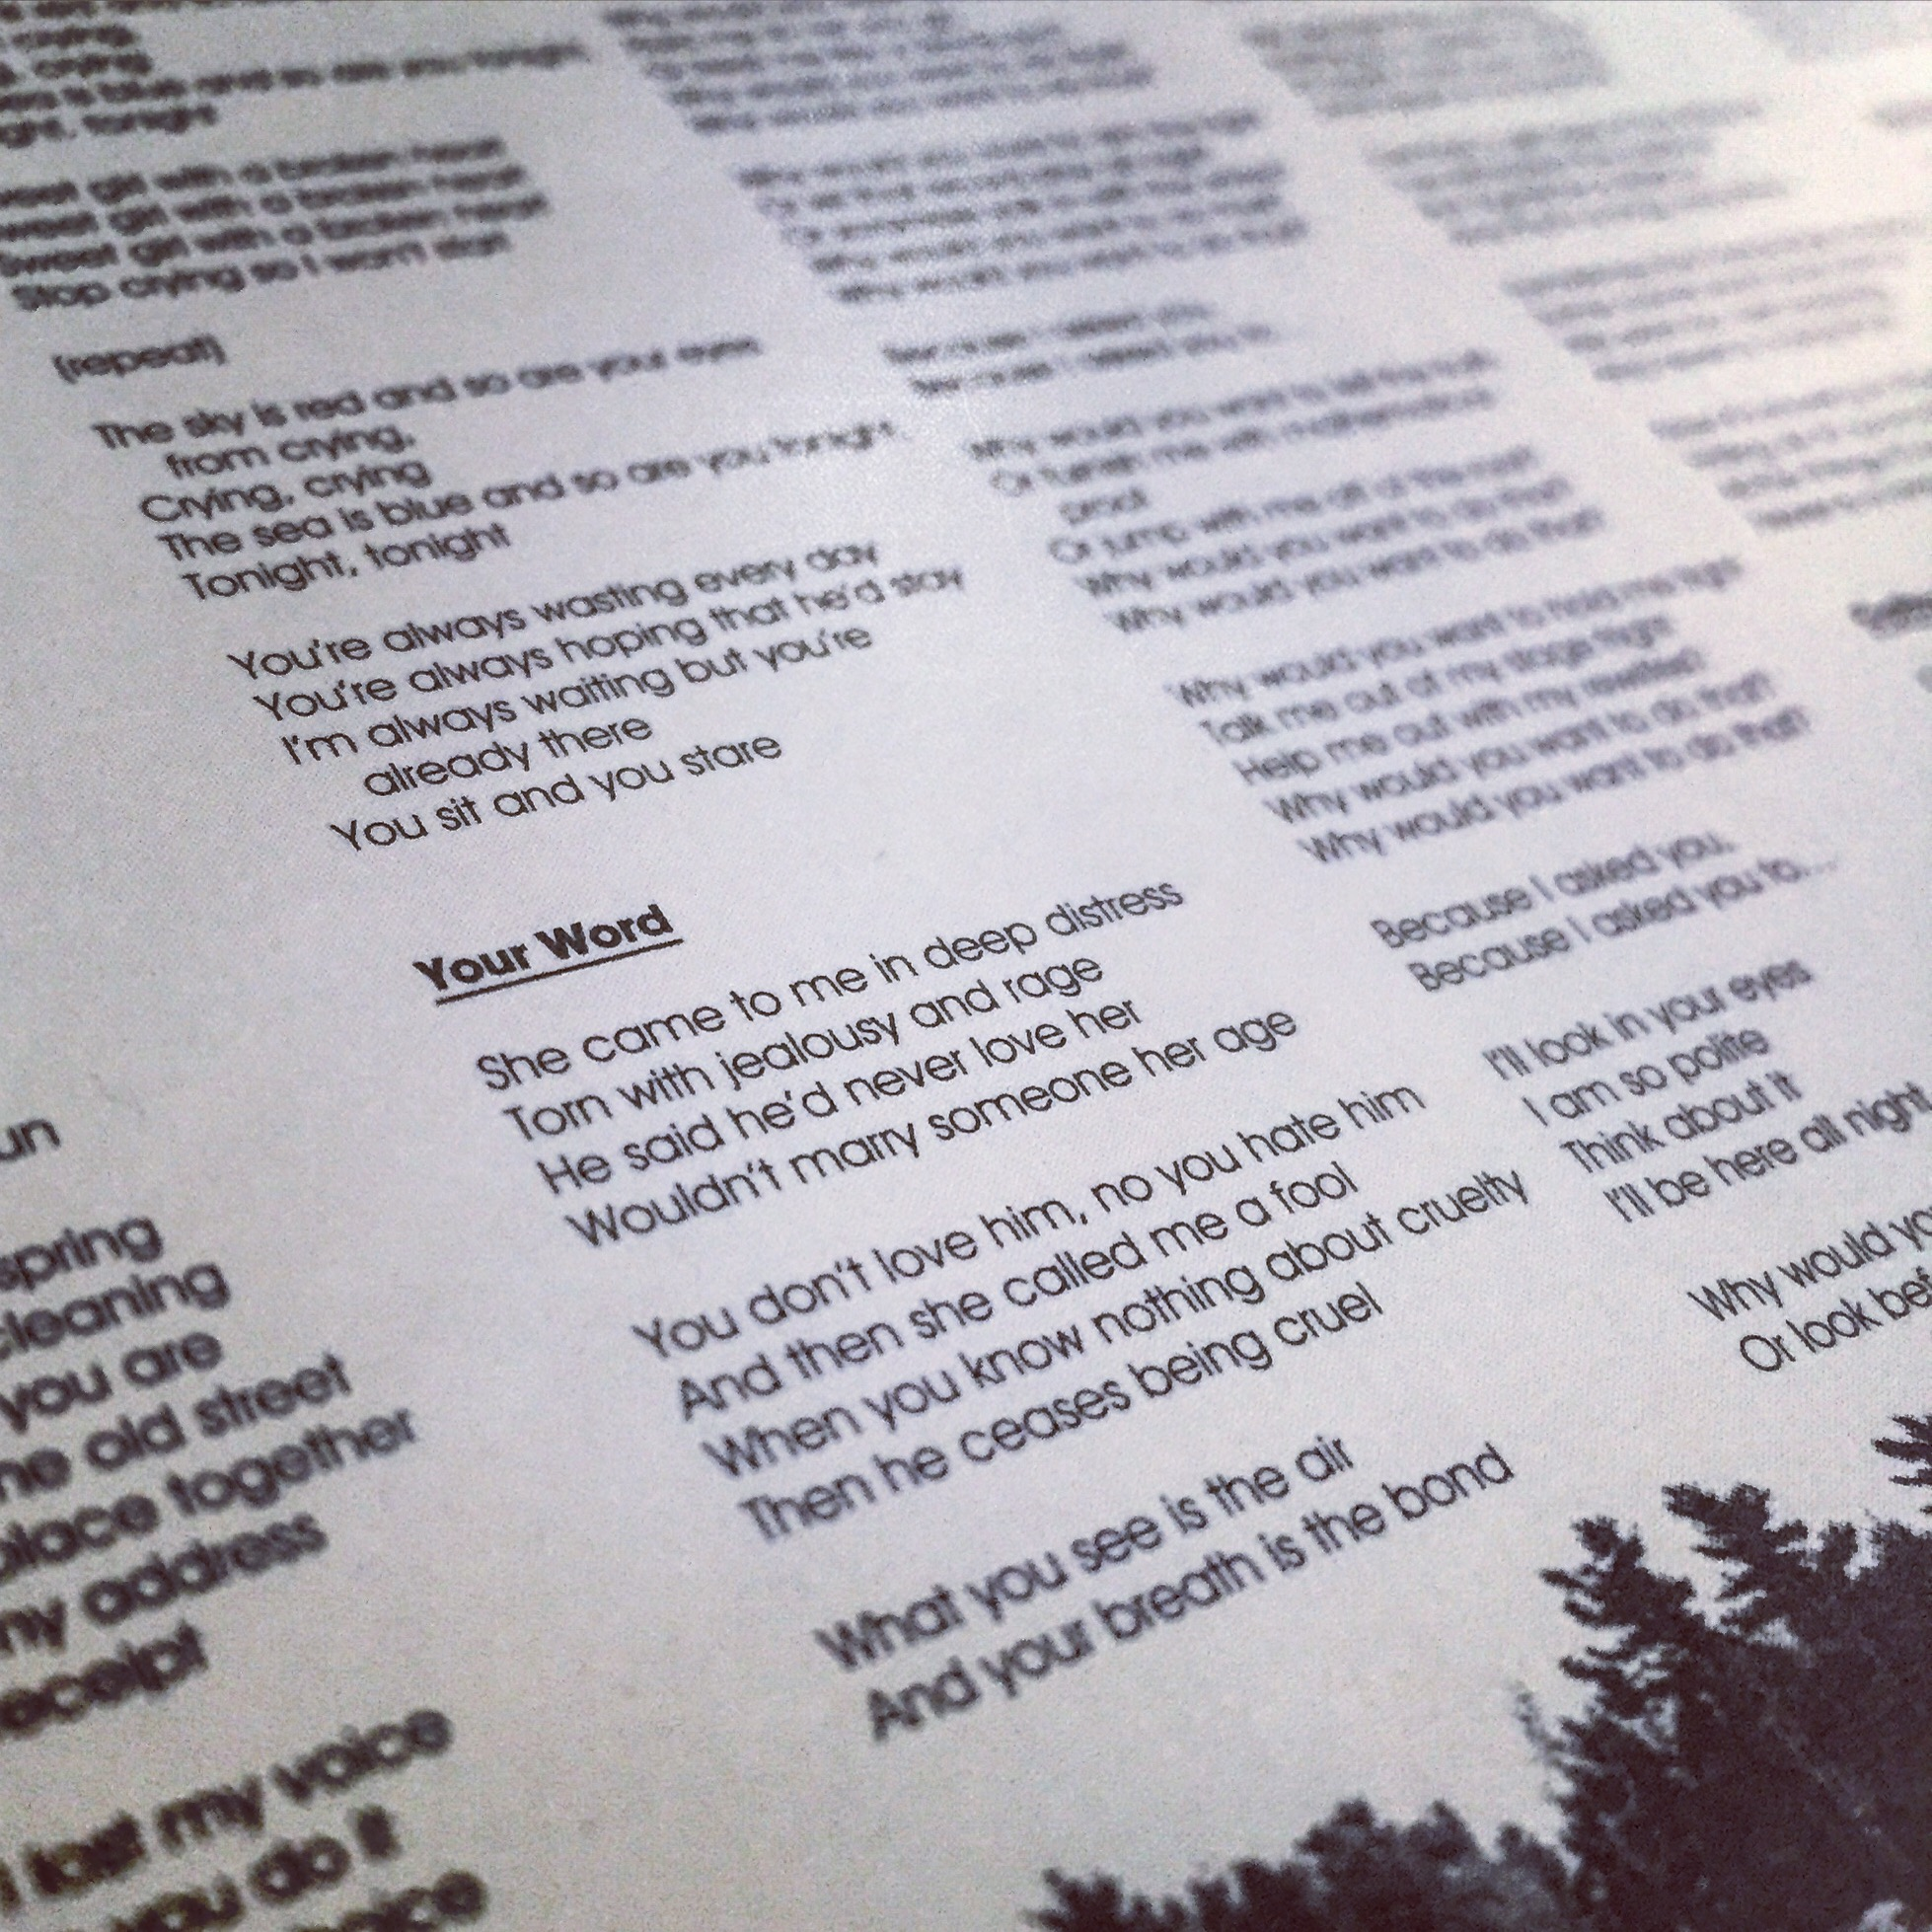 A close-up on the lyrics.